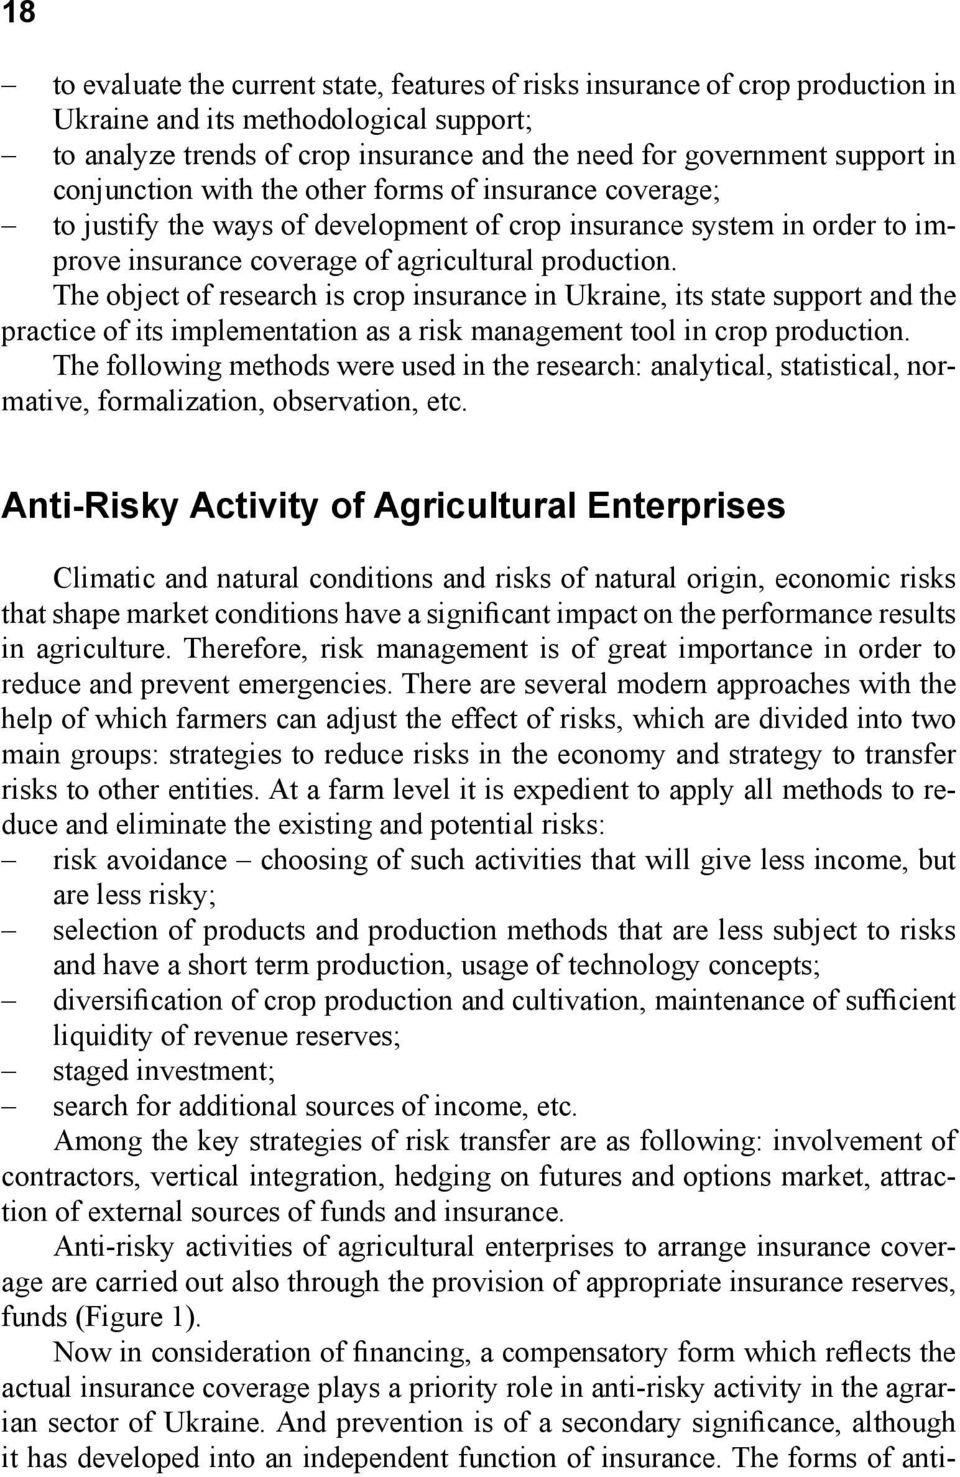 The object of research is crop insurance in Ukraine, its state support and the practice of its implementation as a risk management tool in crop production.